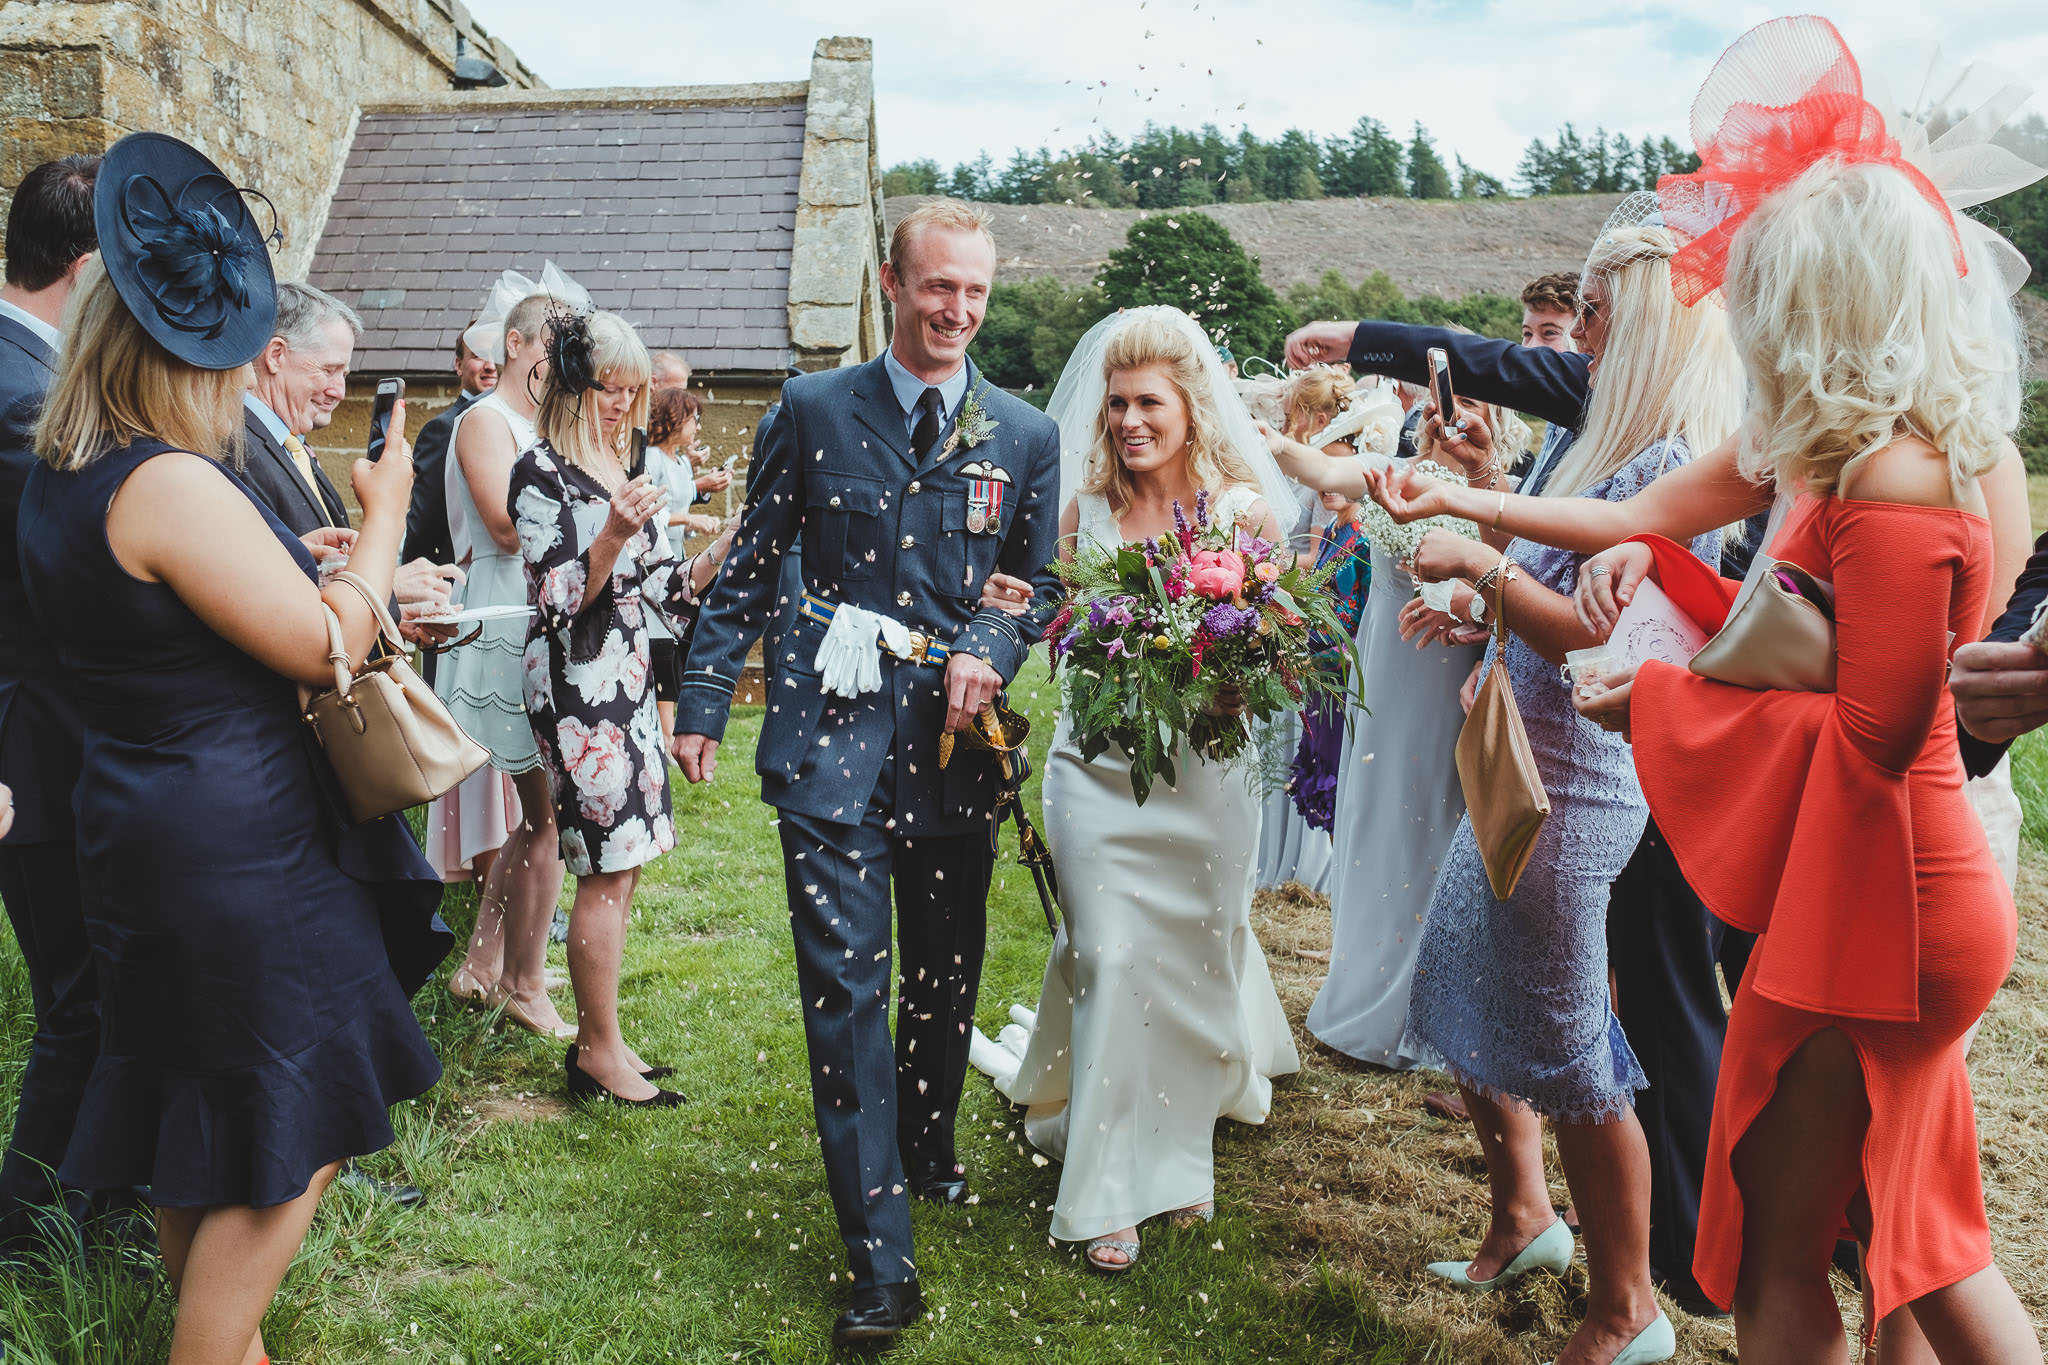 The bride and groom are showered with confetti by their guests